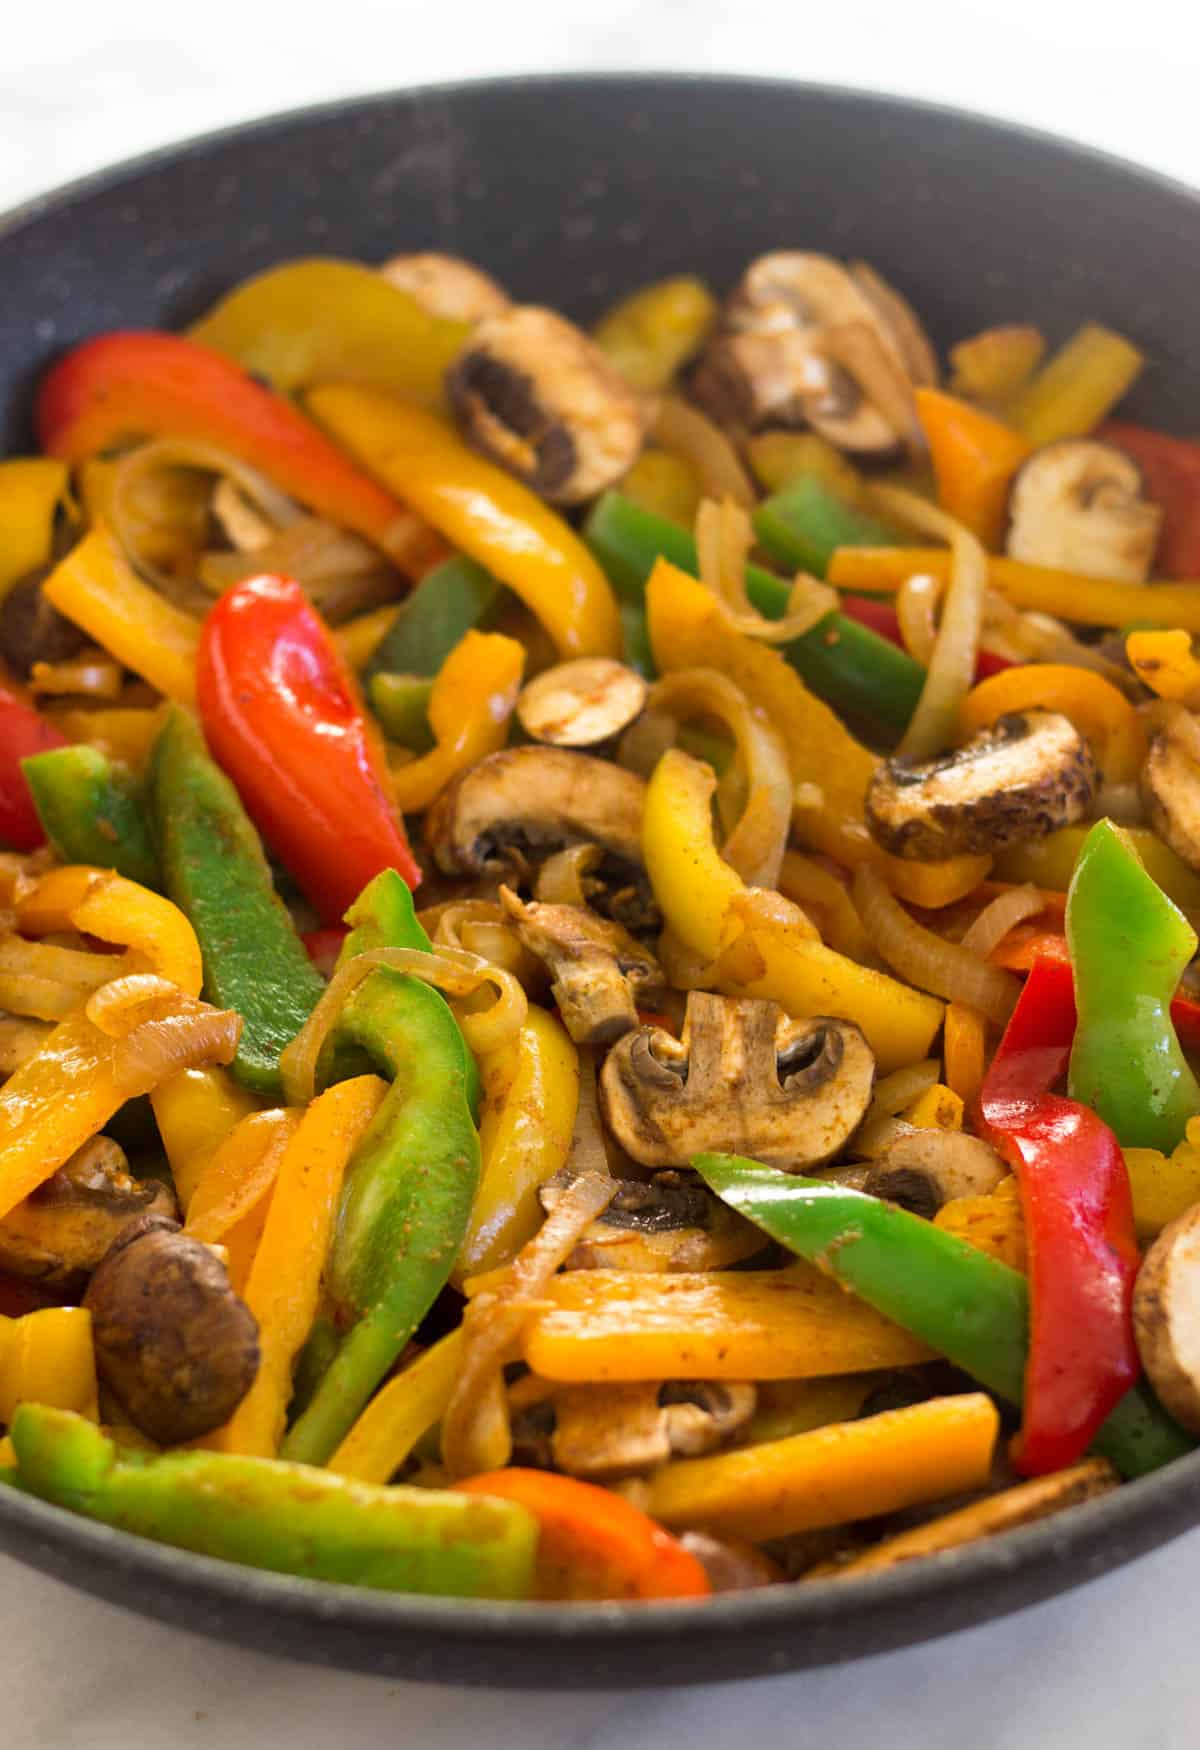 pan of fajita veggies